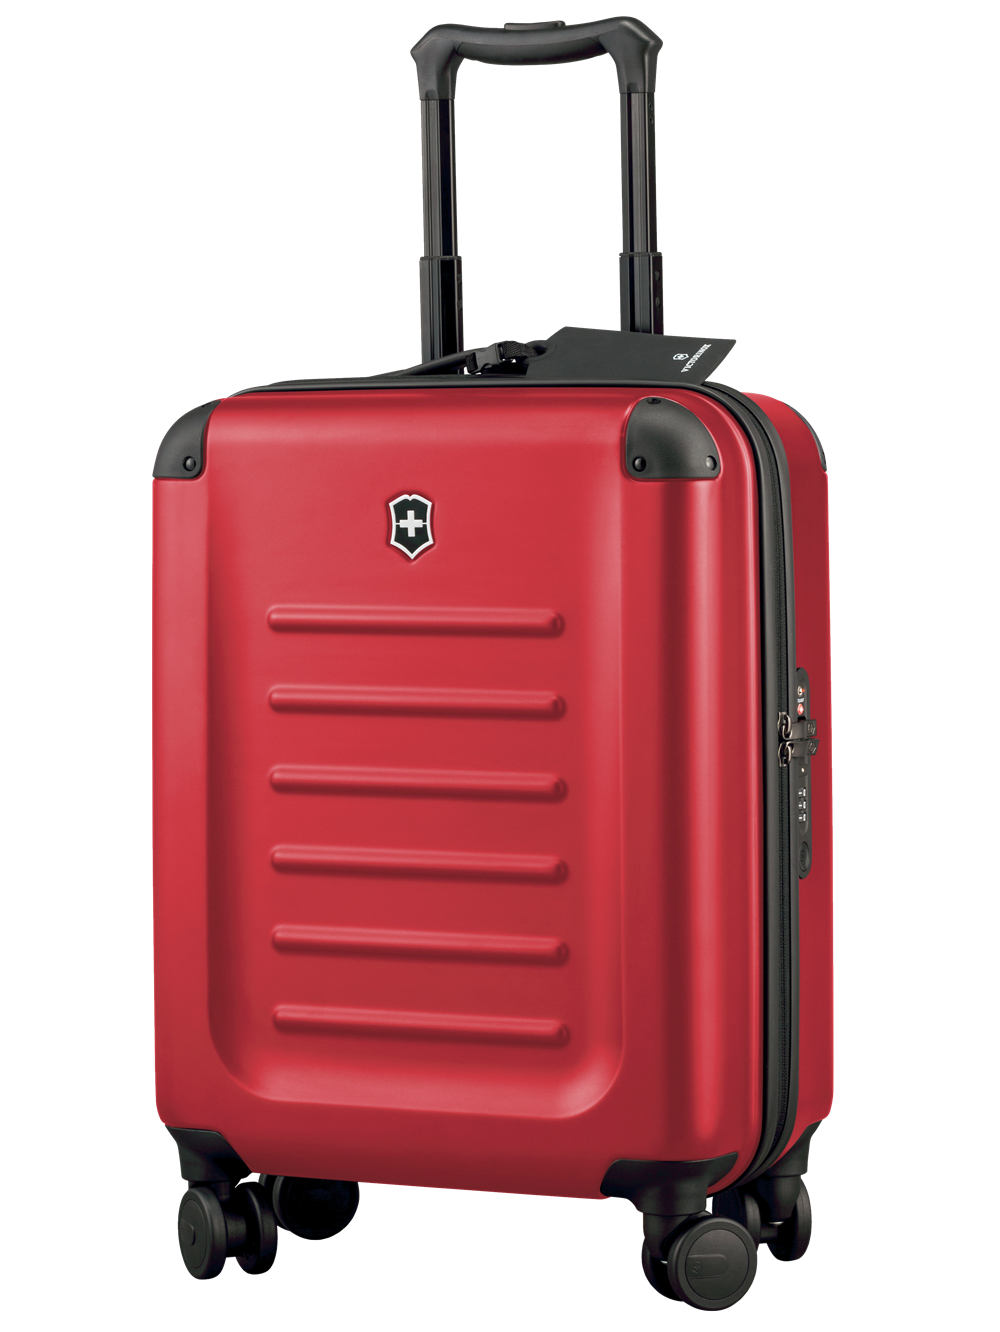 Luggage Png File PNG Image